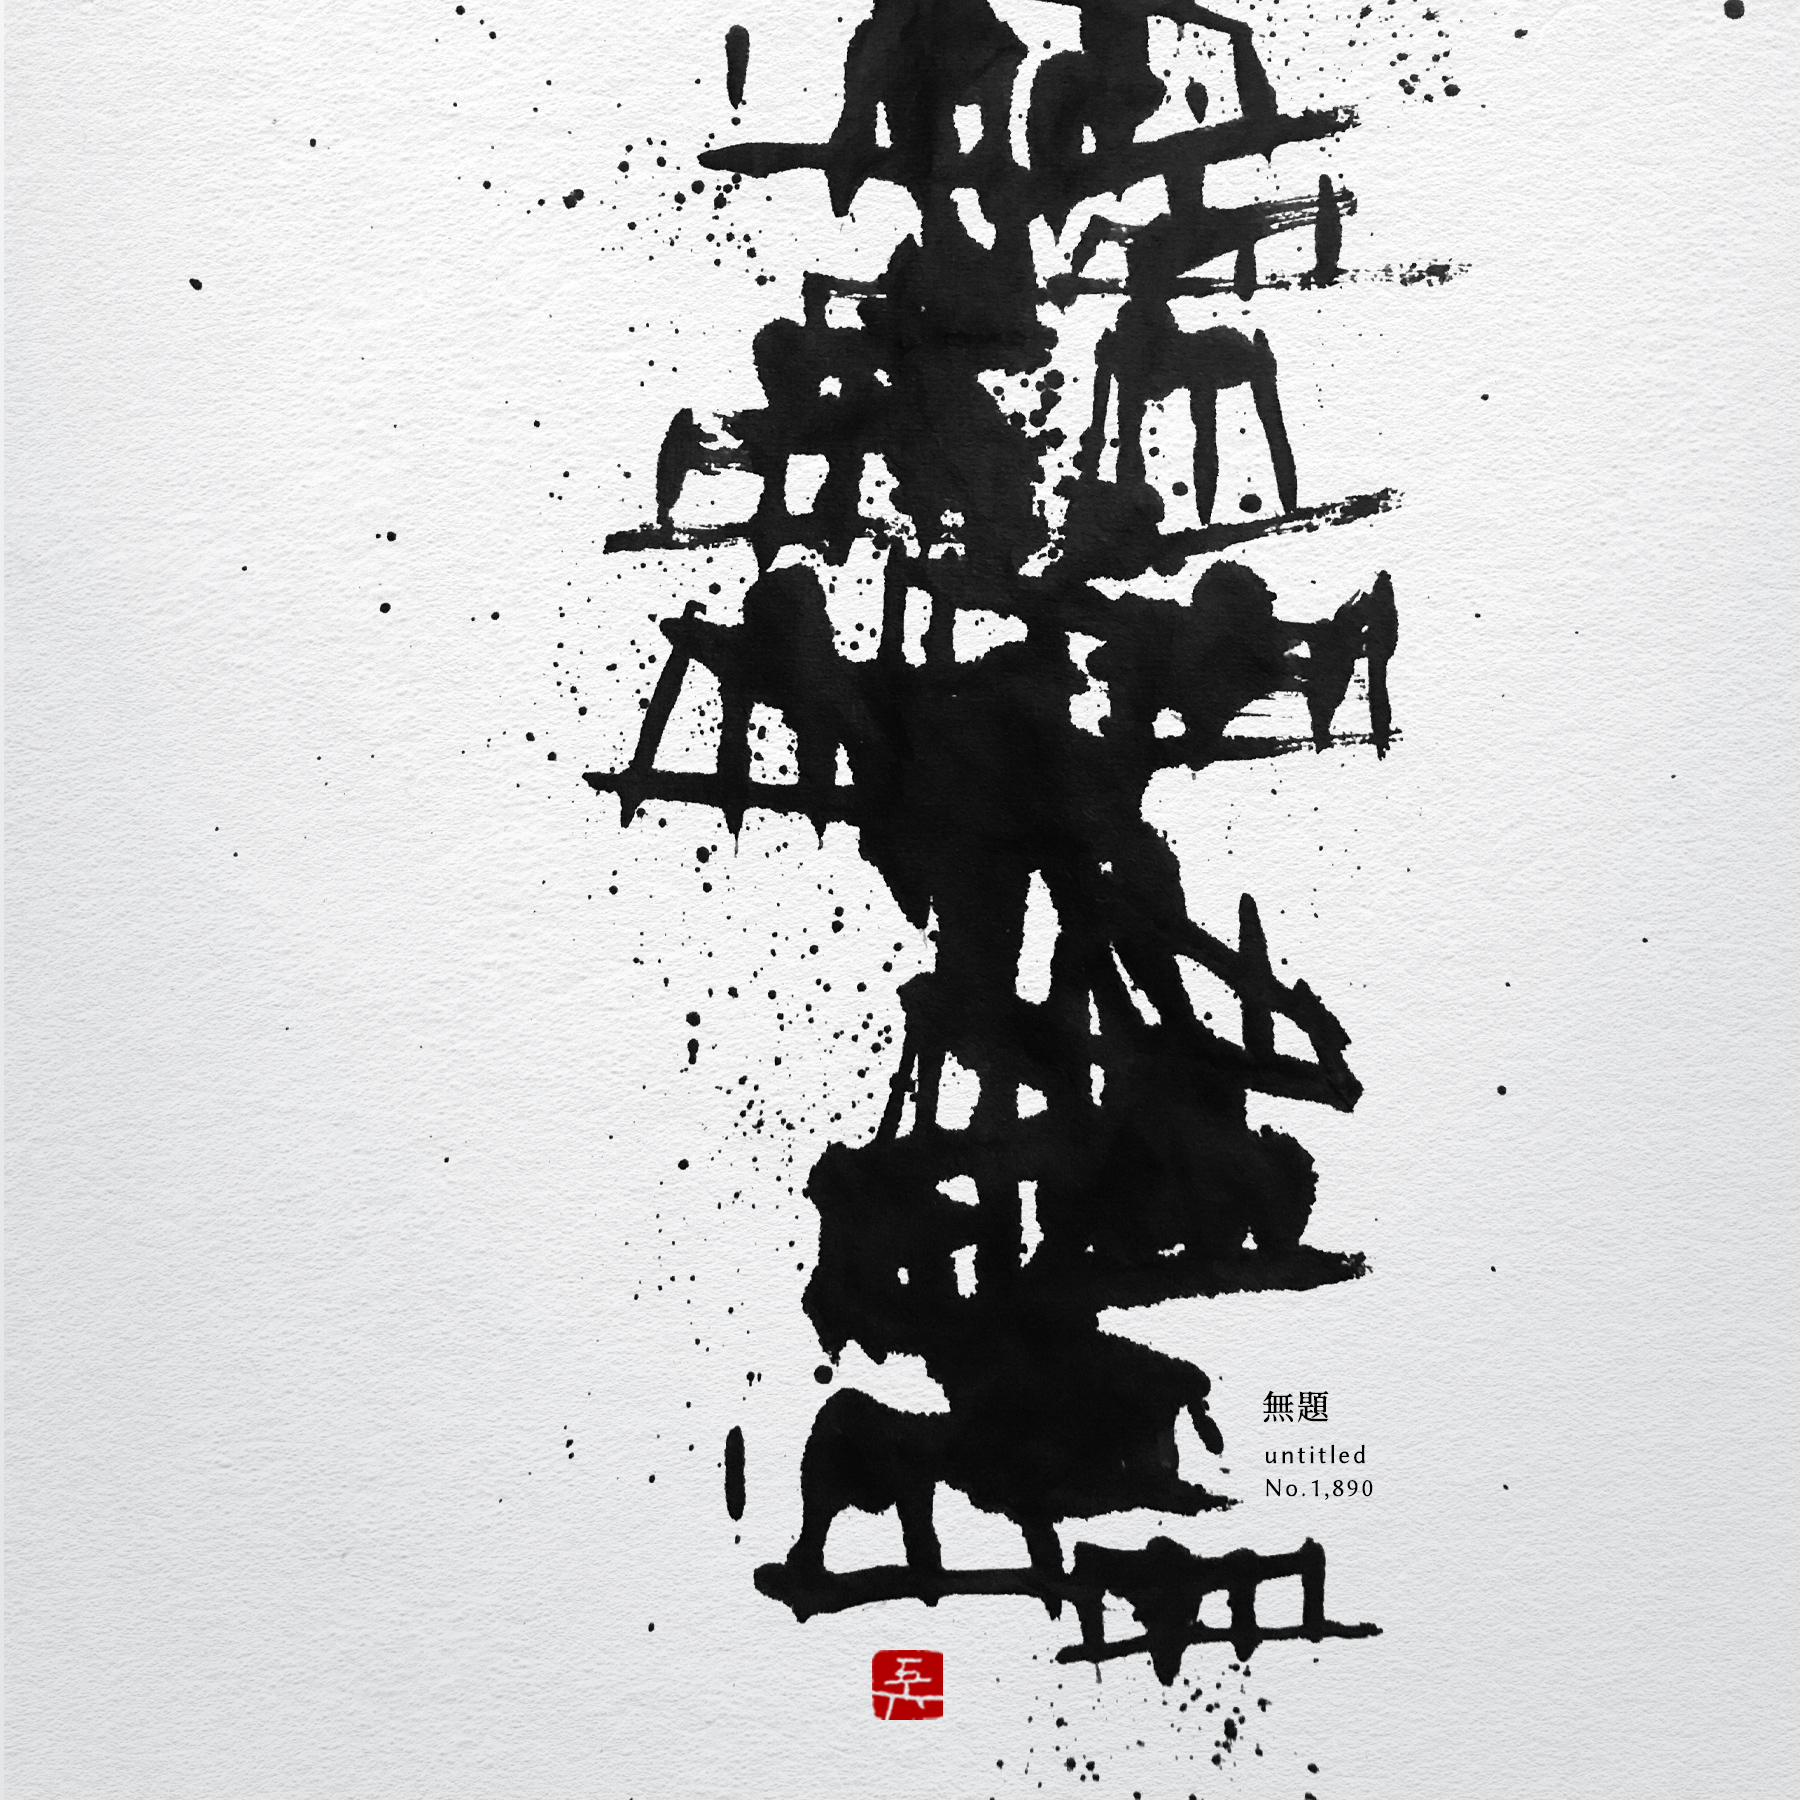 血 blood 書道作品 japaneseart japanese calligraphy 書家 田川悟郎 Goroh Tagawa